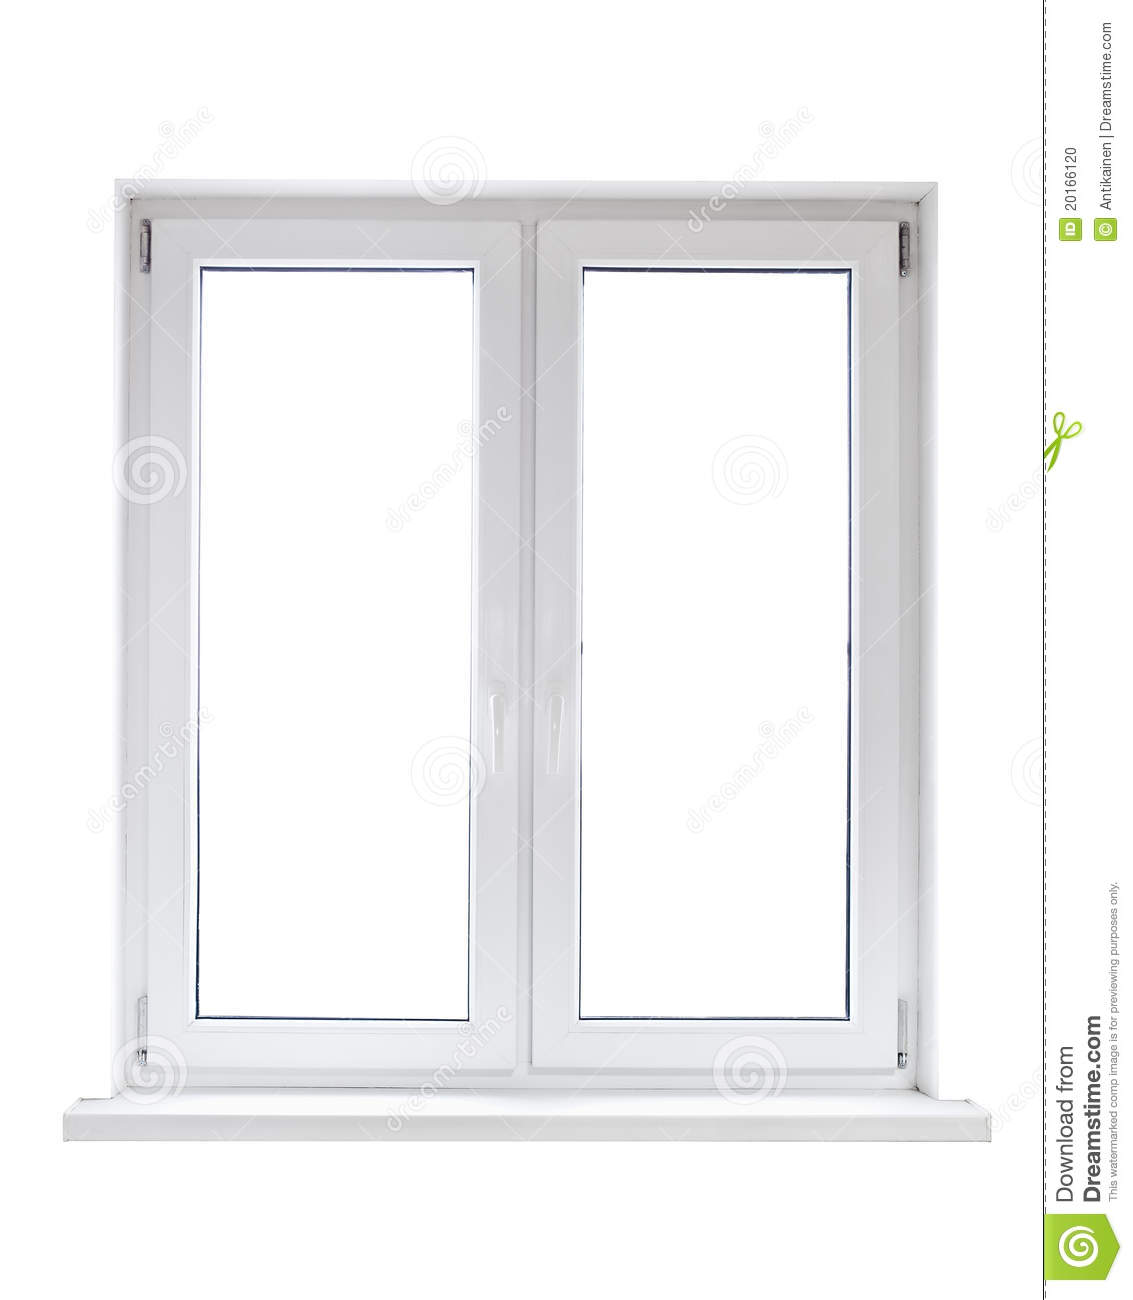 Plastic window stock photo image of glass closed for Window plastic